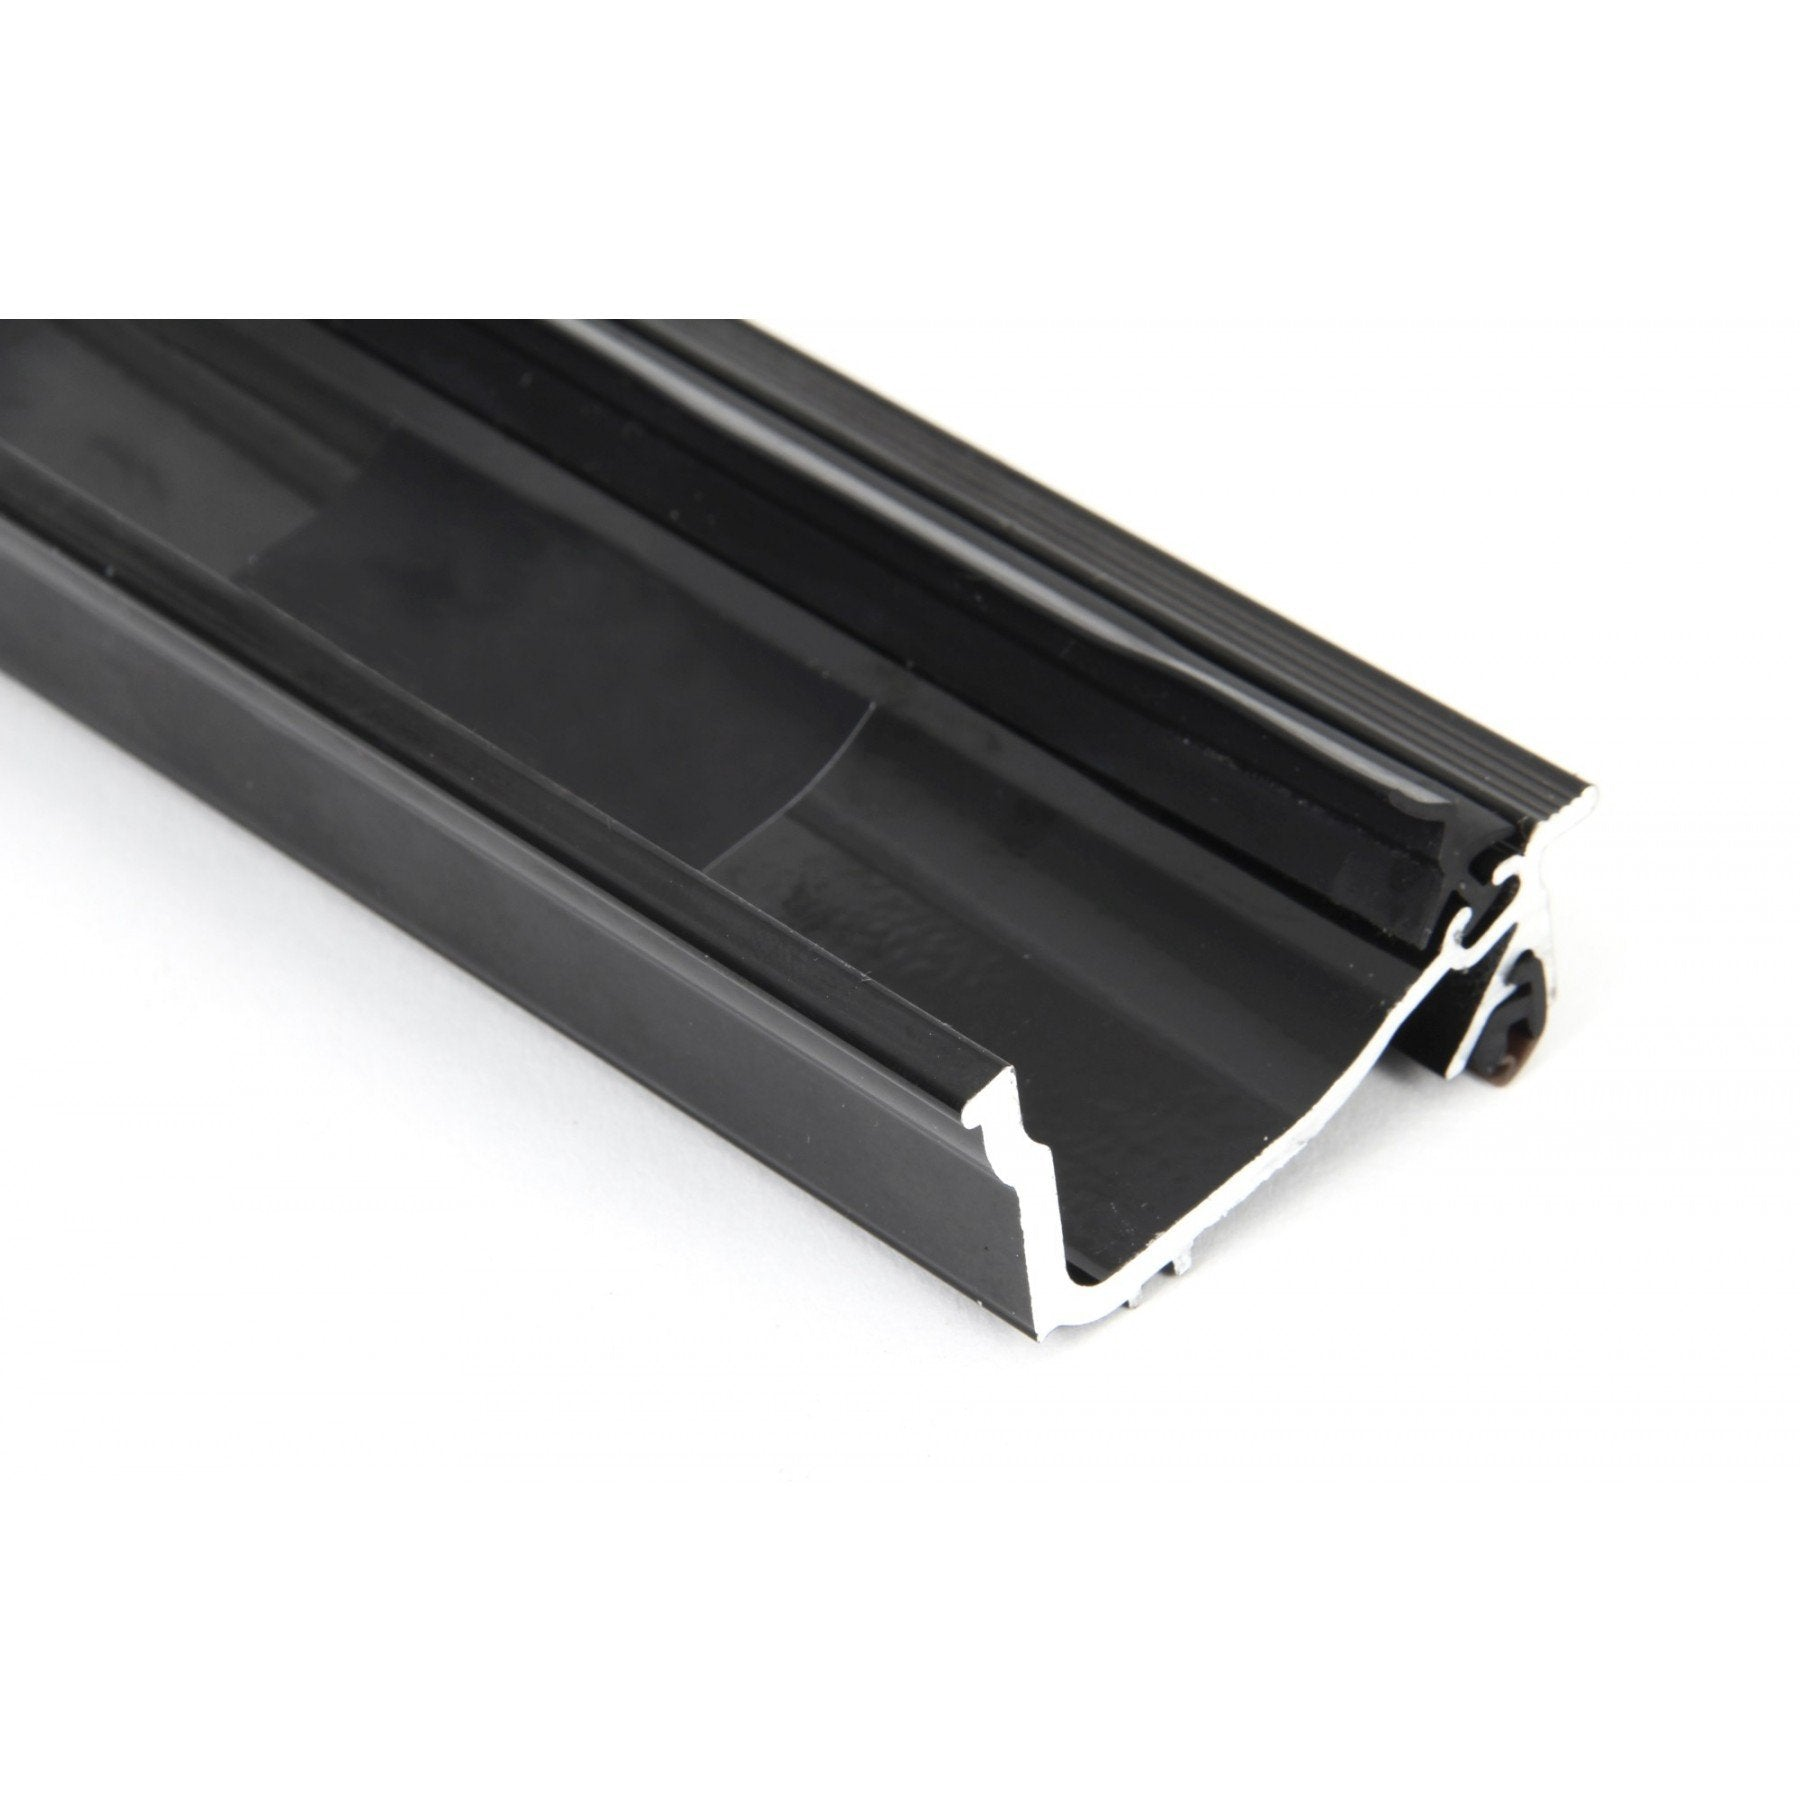 Black Macclex Lowline Sill - 914mm - No.42 Interiors